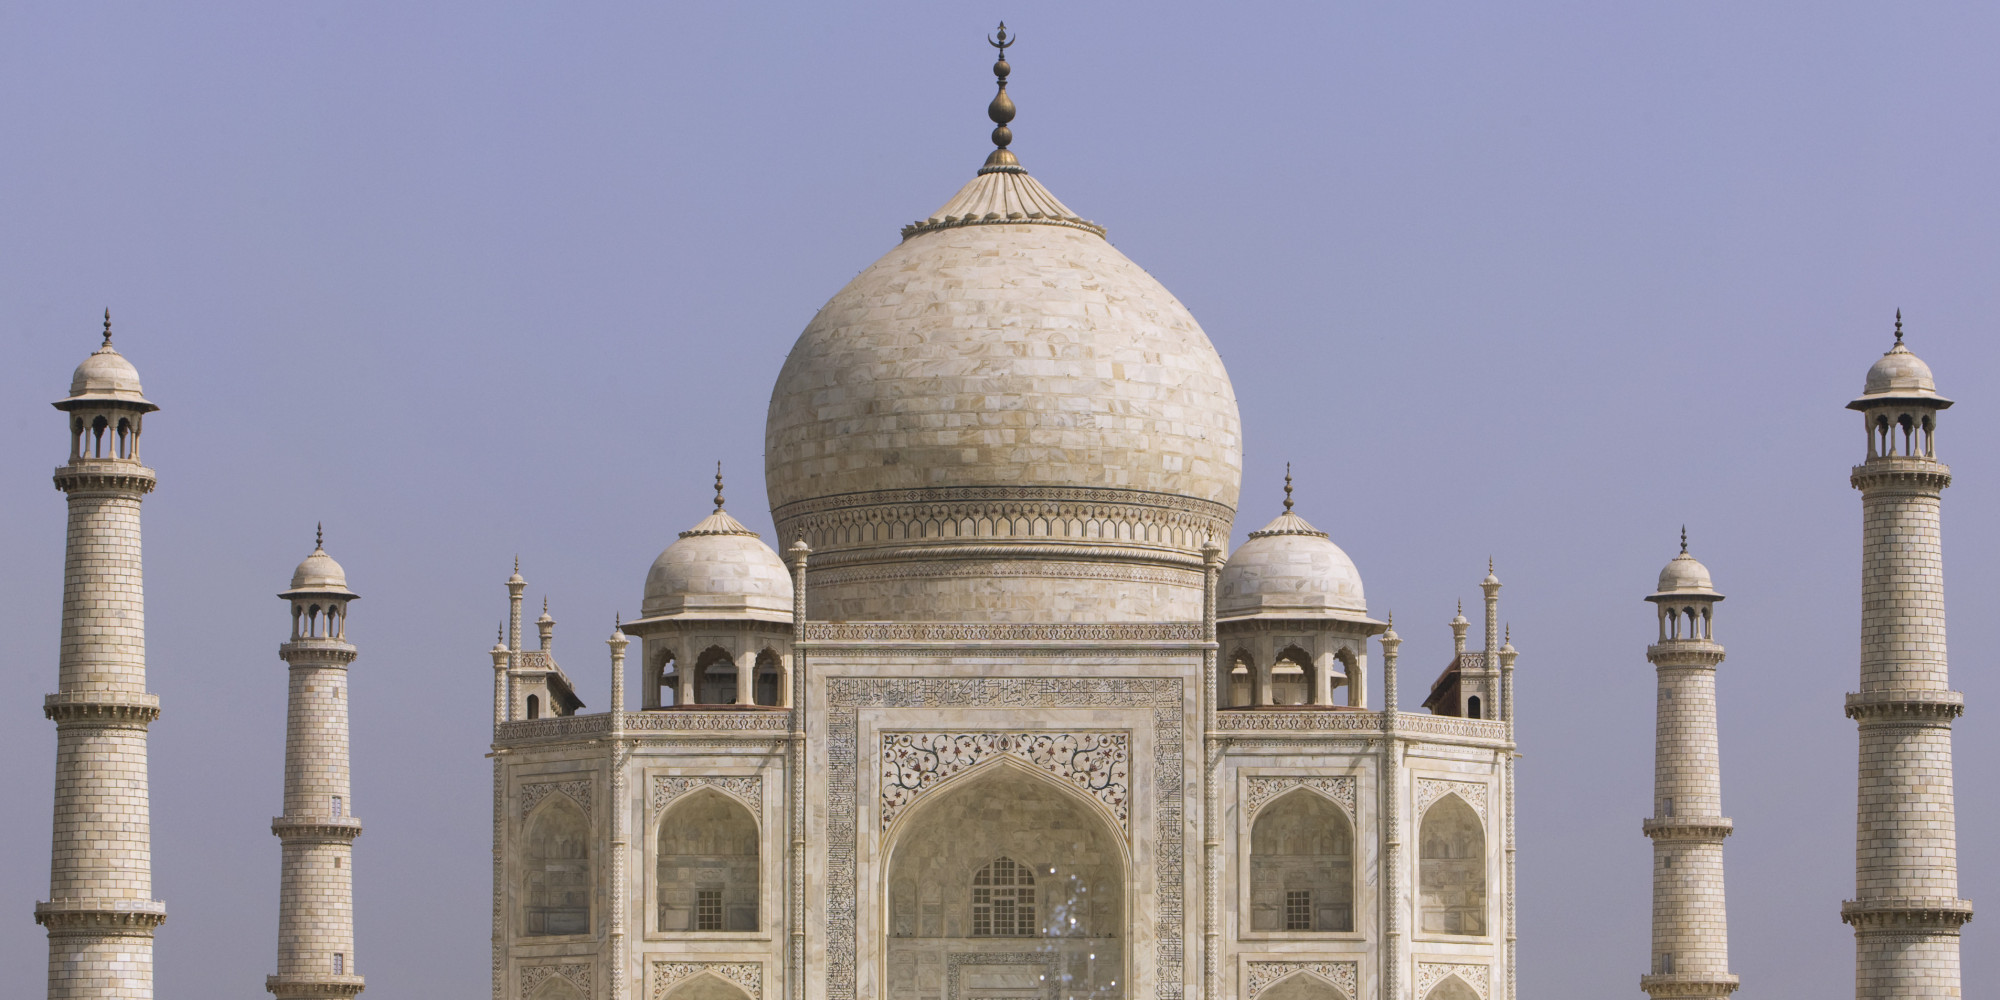 taj mahal An india tour is incomplete without a visit to the taj mahal learn more with 10 facts about taj mahal to plan your taj mahal tour.